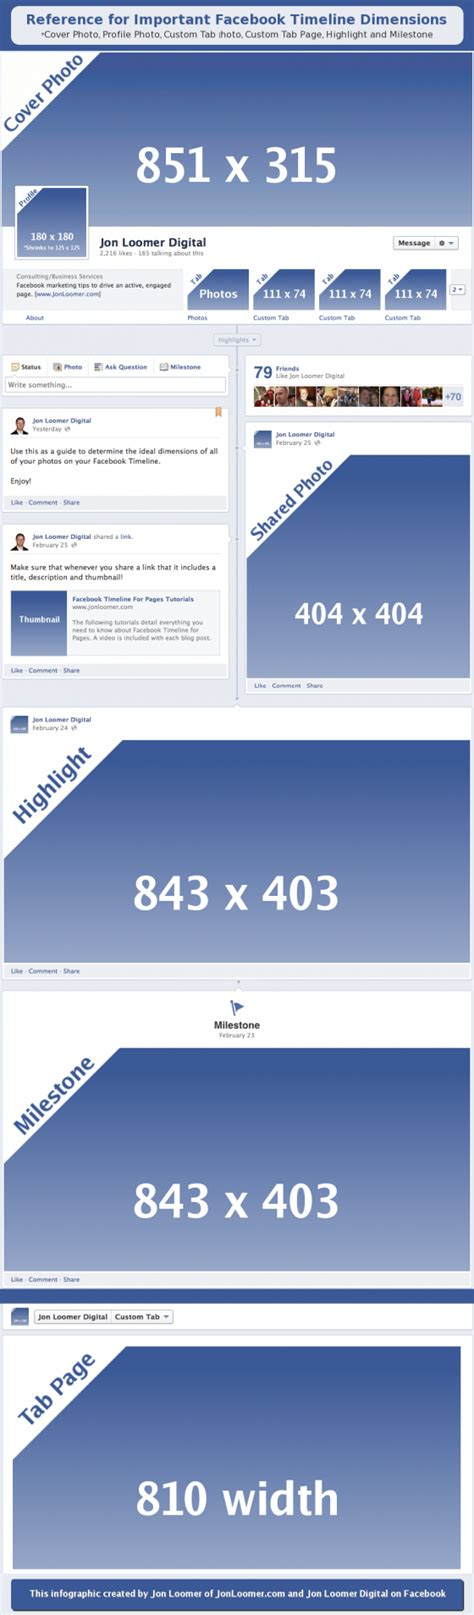 getting creative with your facebook fan page timeline